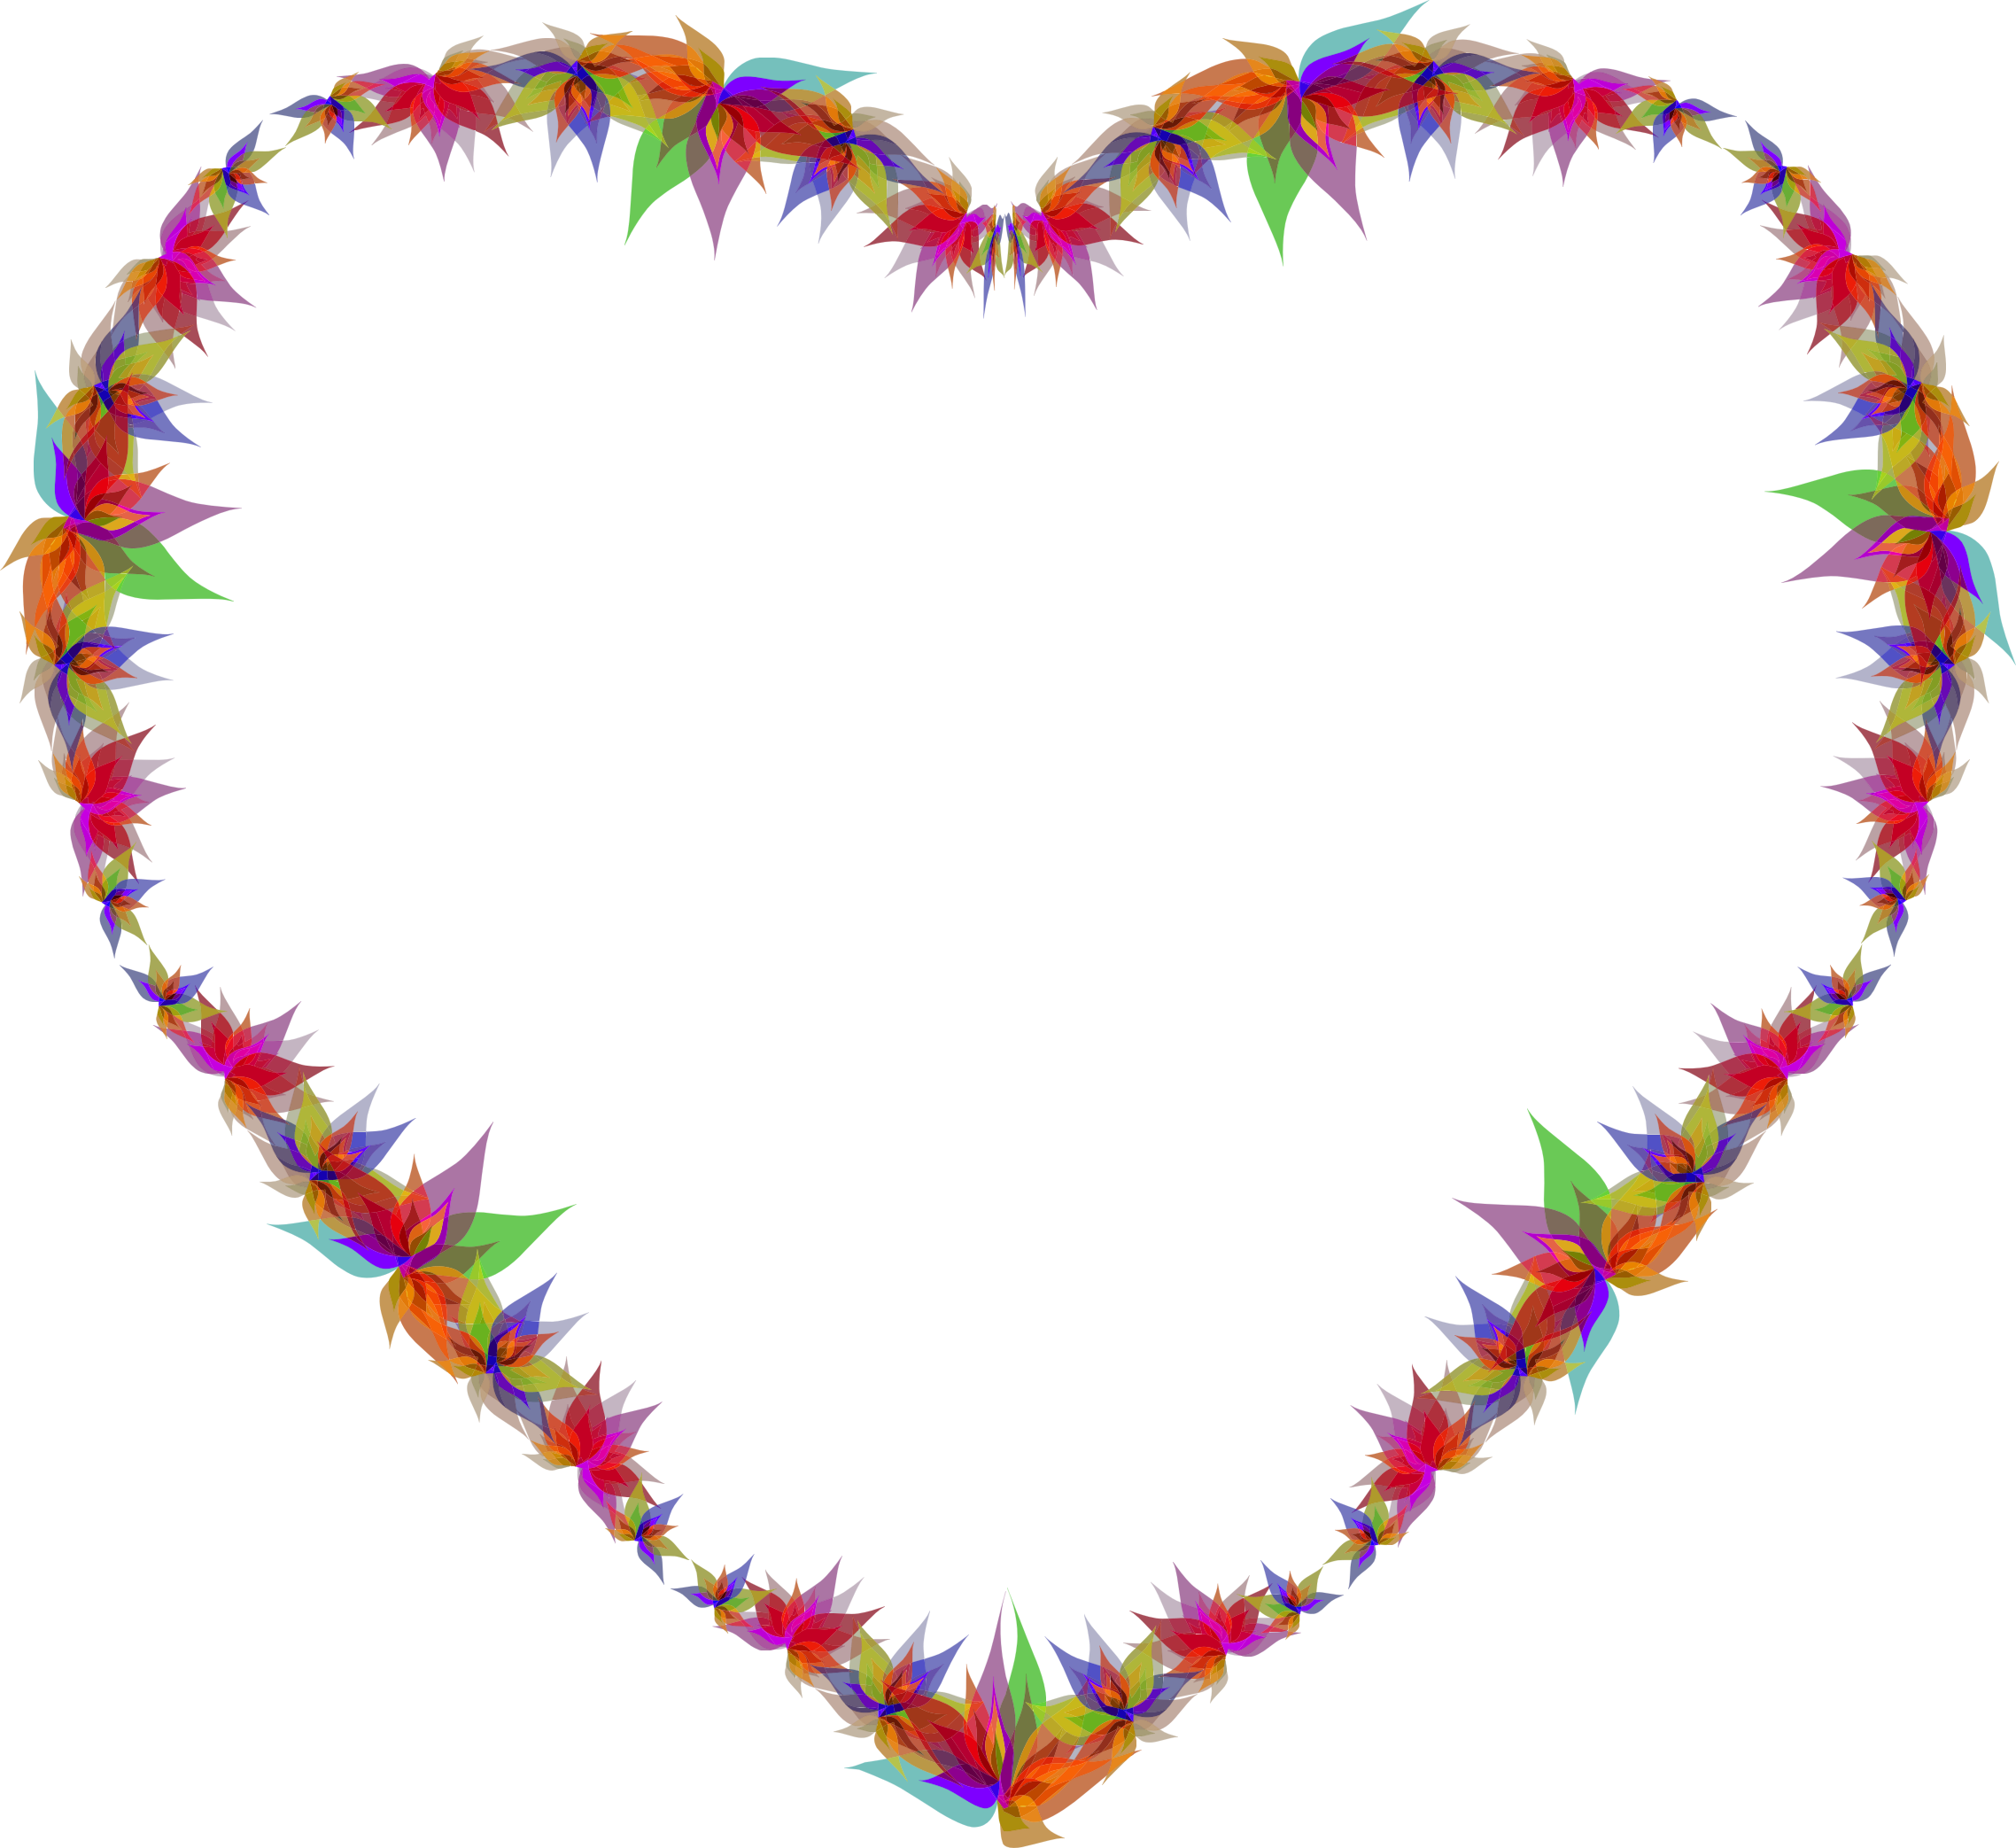 Flower heart png. Abstract flowers icons free